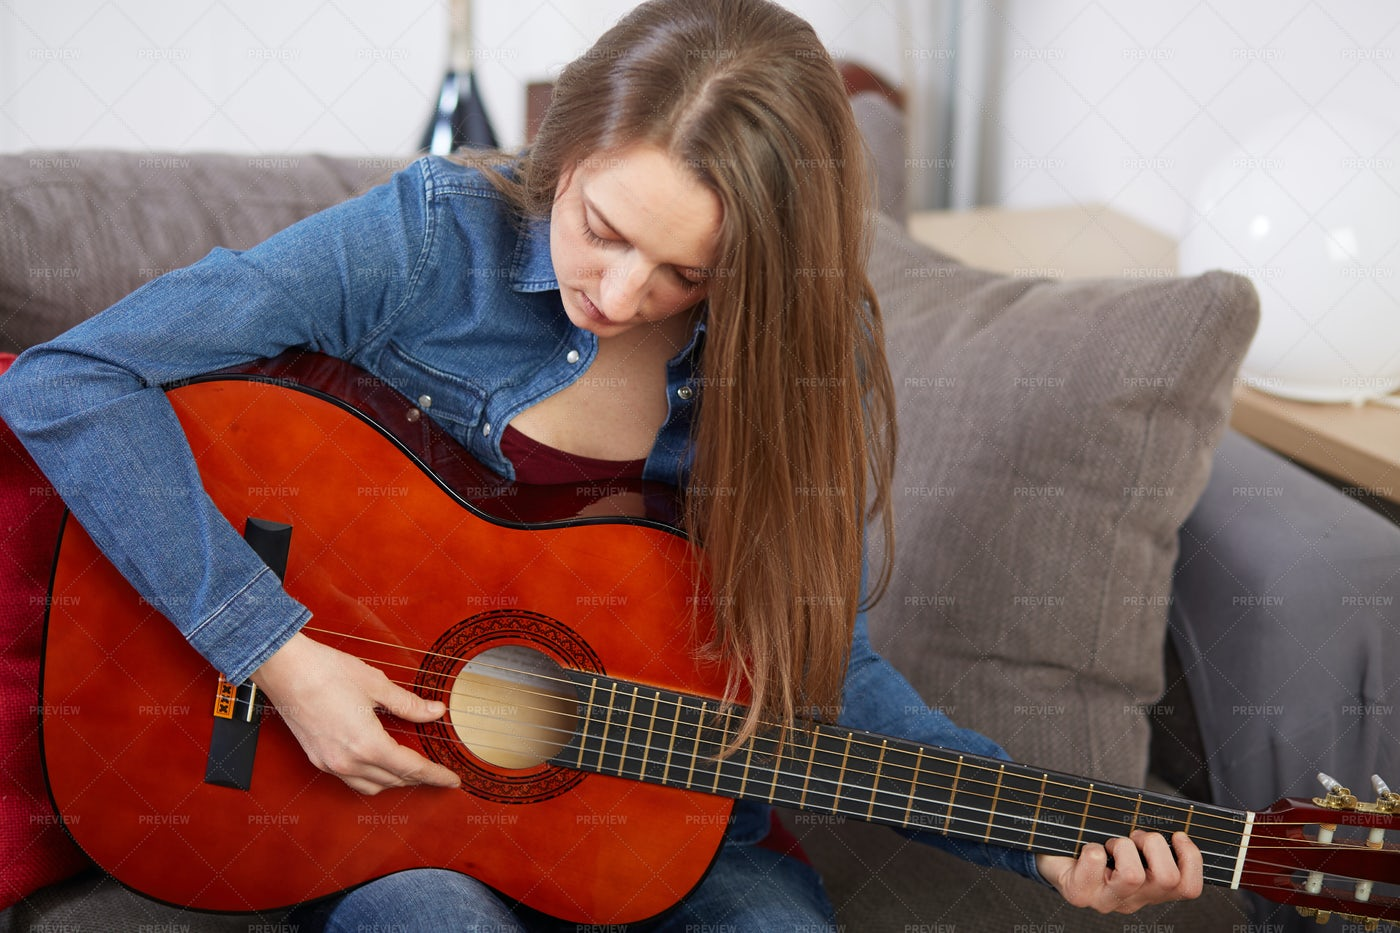 Playing Guitar On The Couch: Stock Photos